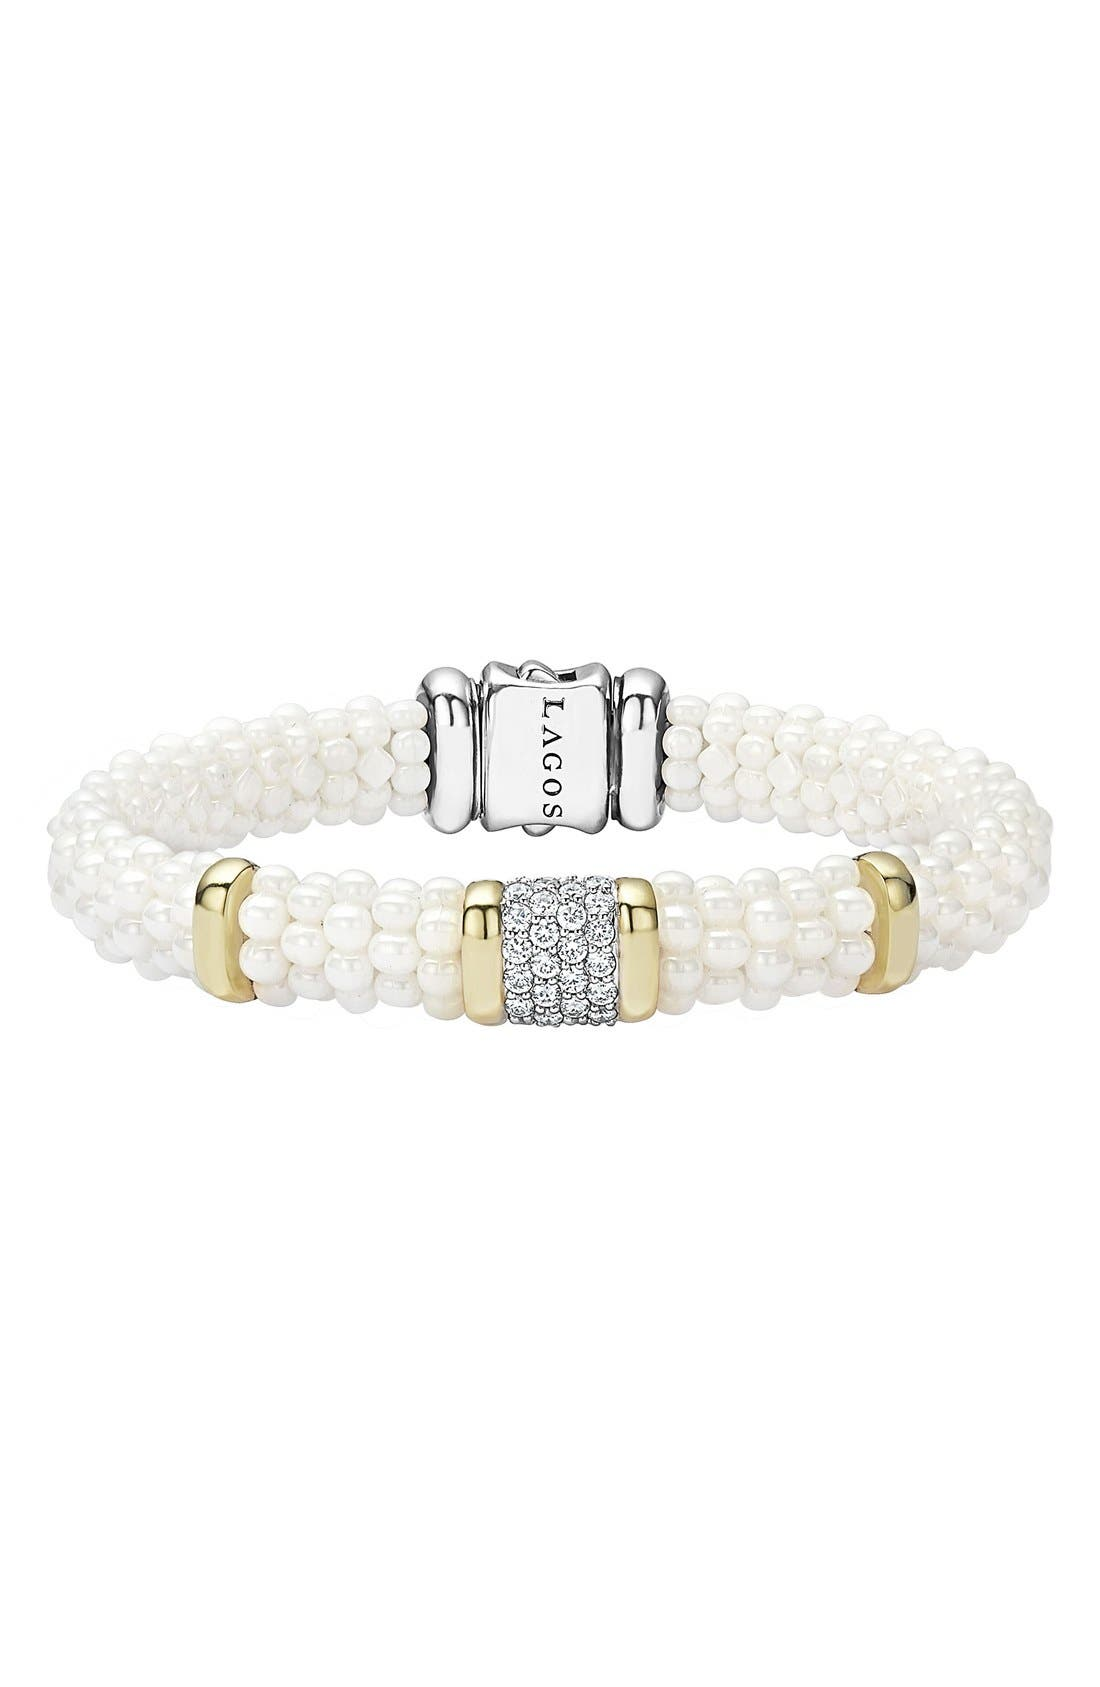 LAGOS 'White Caviar' Diamond Rope Bracelet